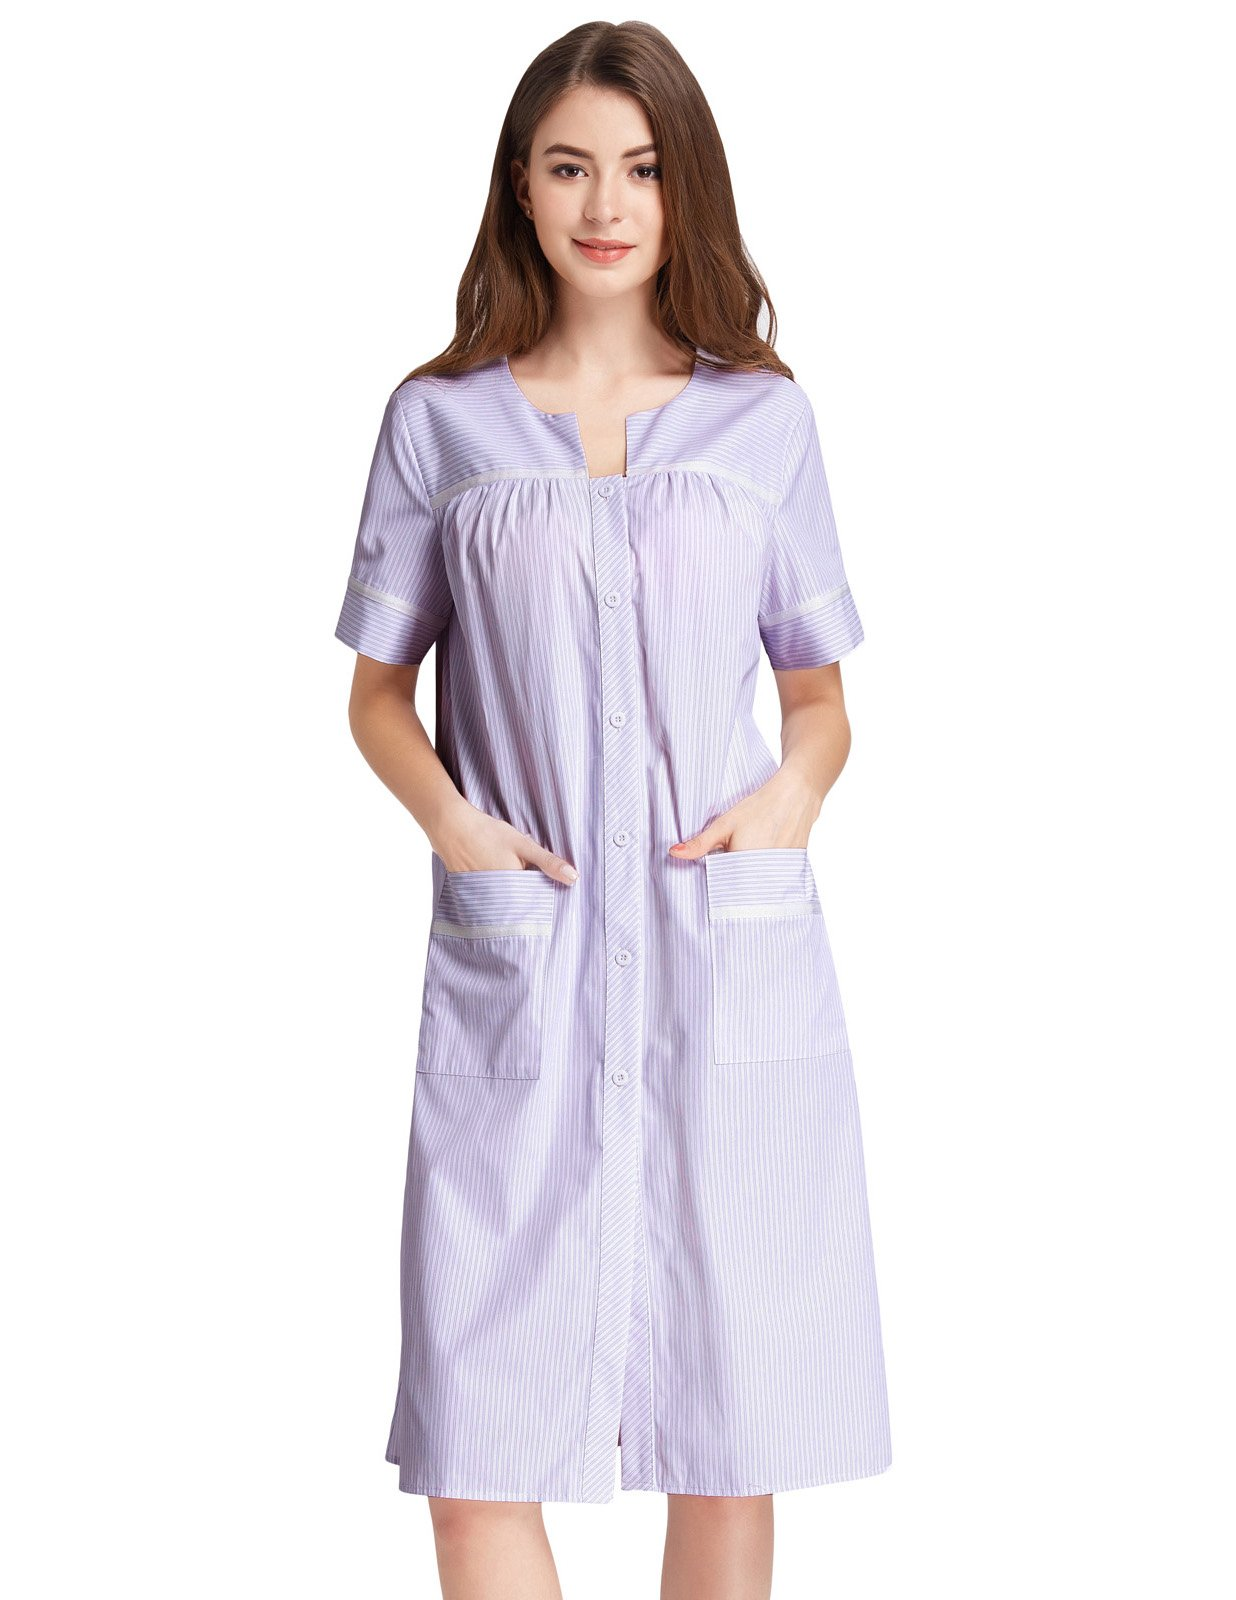 Zexxxy Womens Short Nightgown Button Down Duster Robe Striped House Dress with Pockets